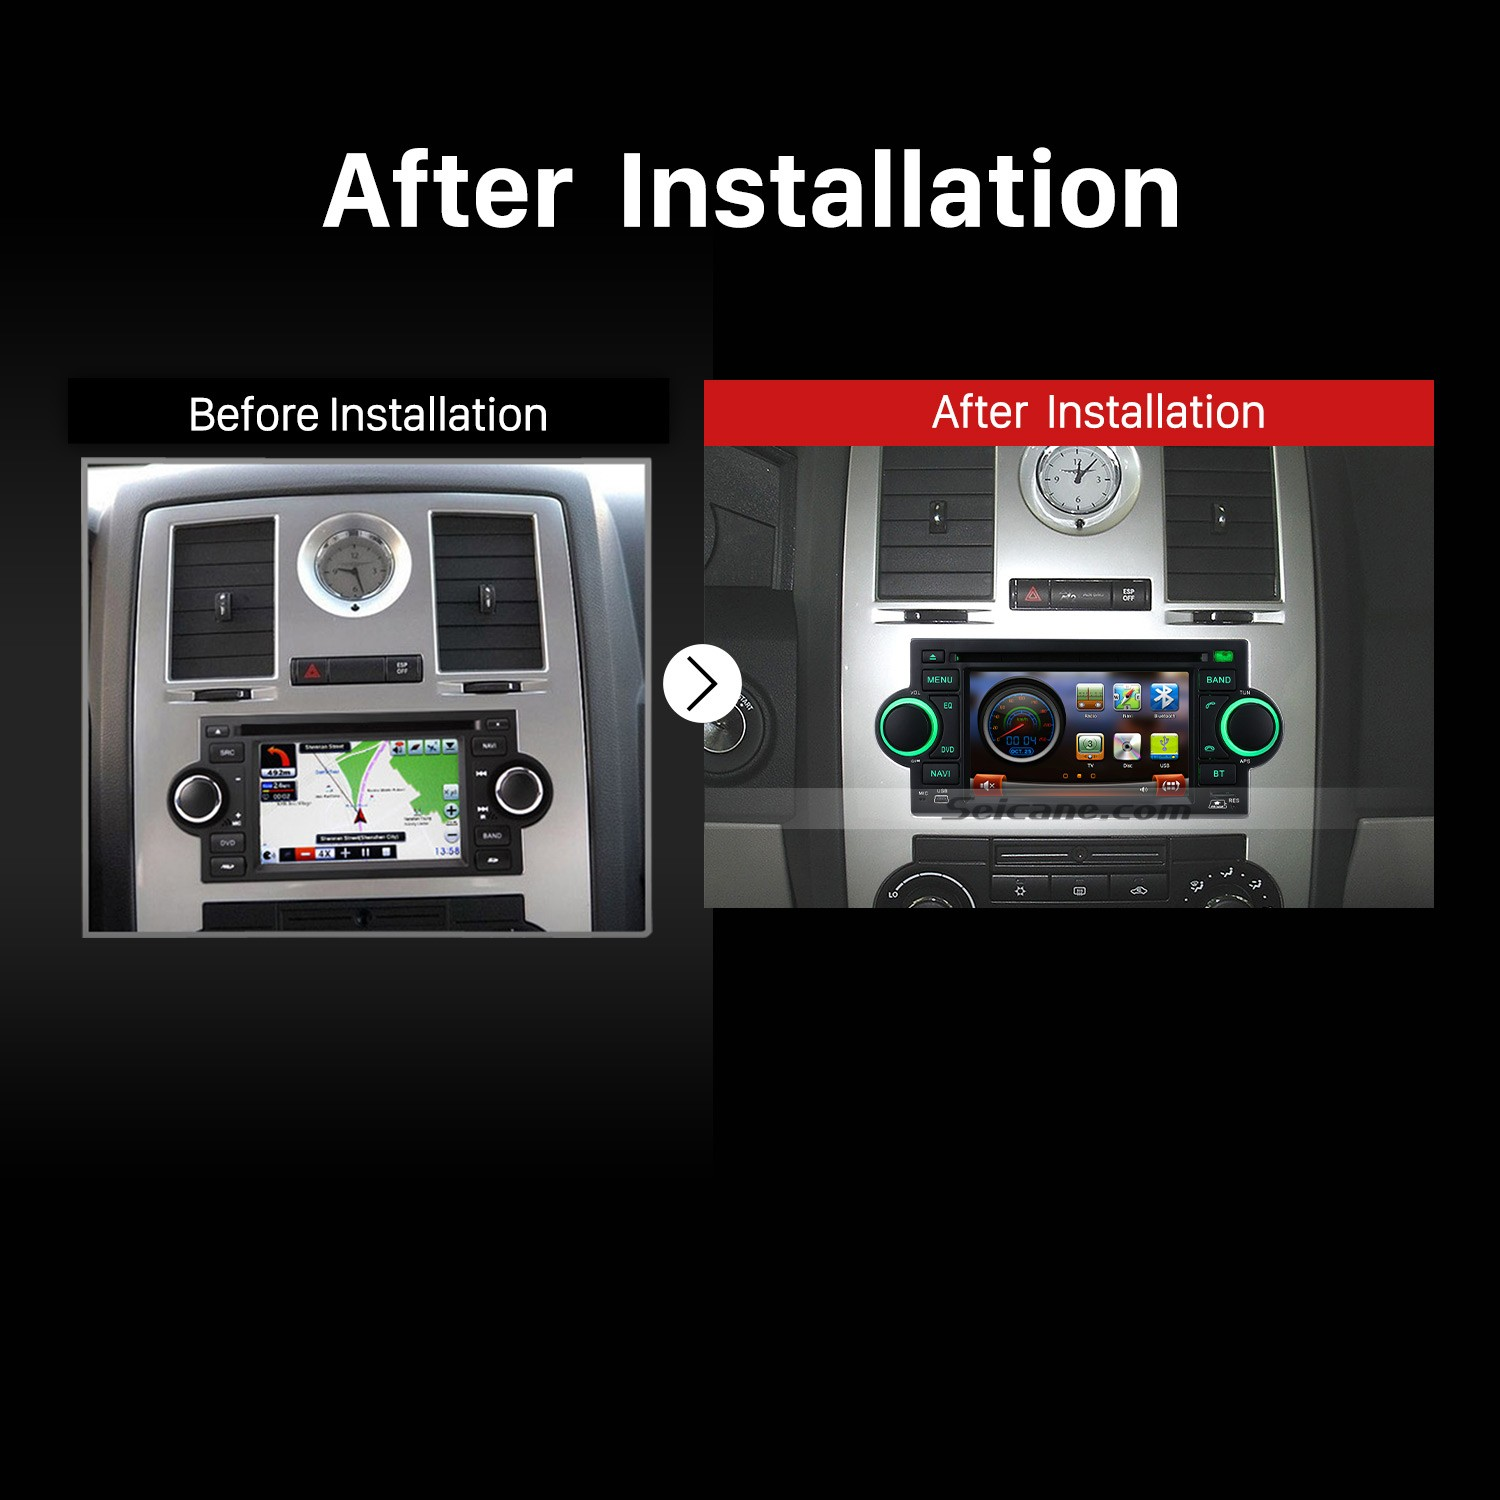 hight resolution of 2002 2007 dodge intrepid magnum neon car stereo after installation